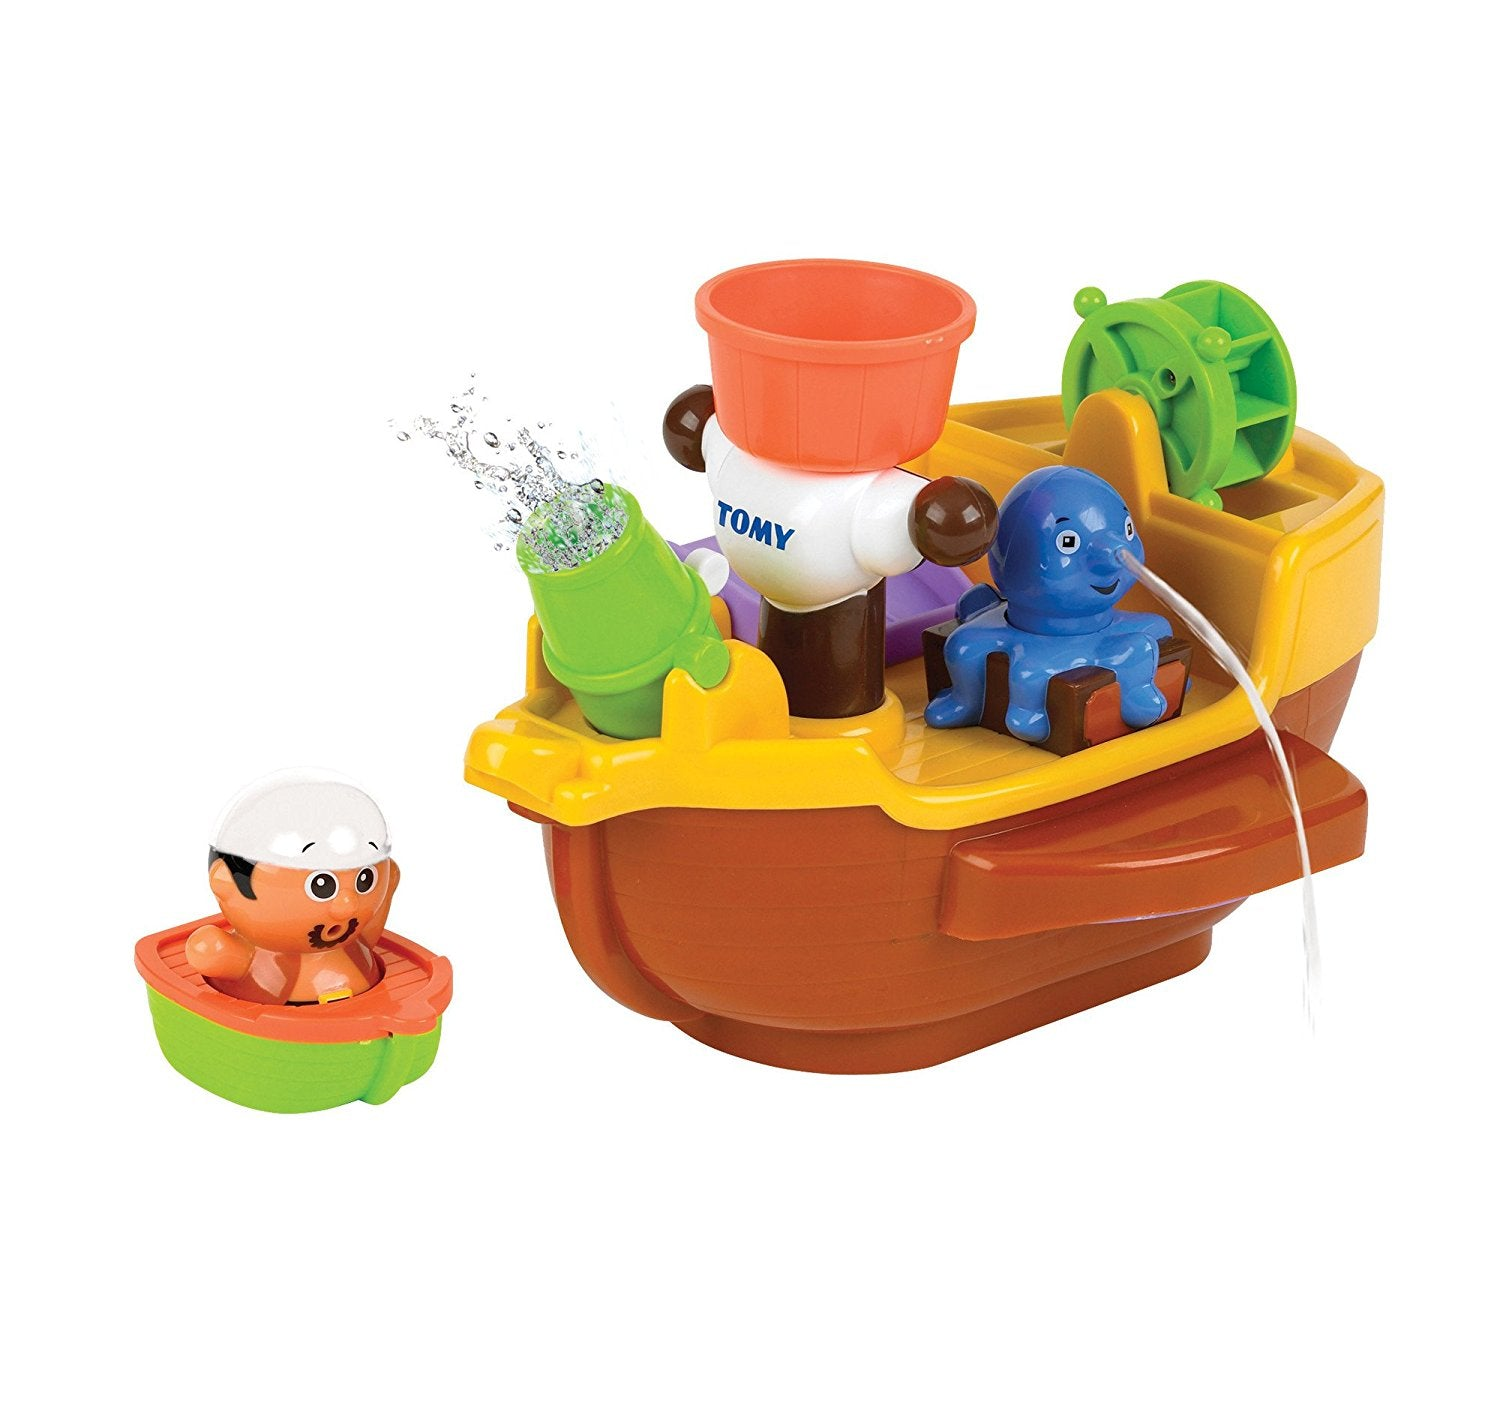 Tomy  Toomies Pirate Bath Ship